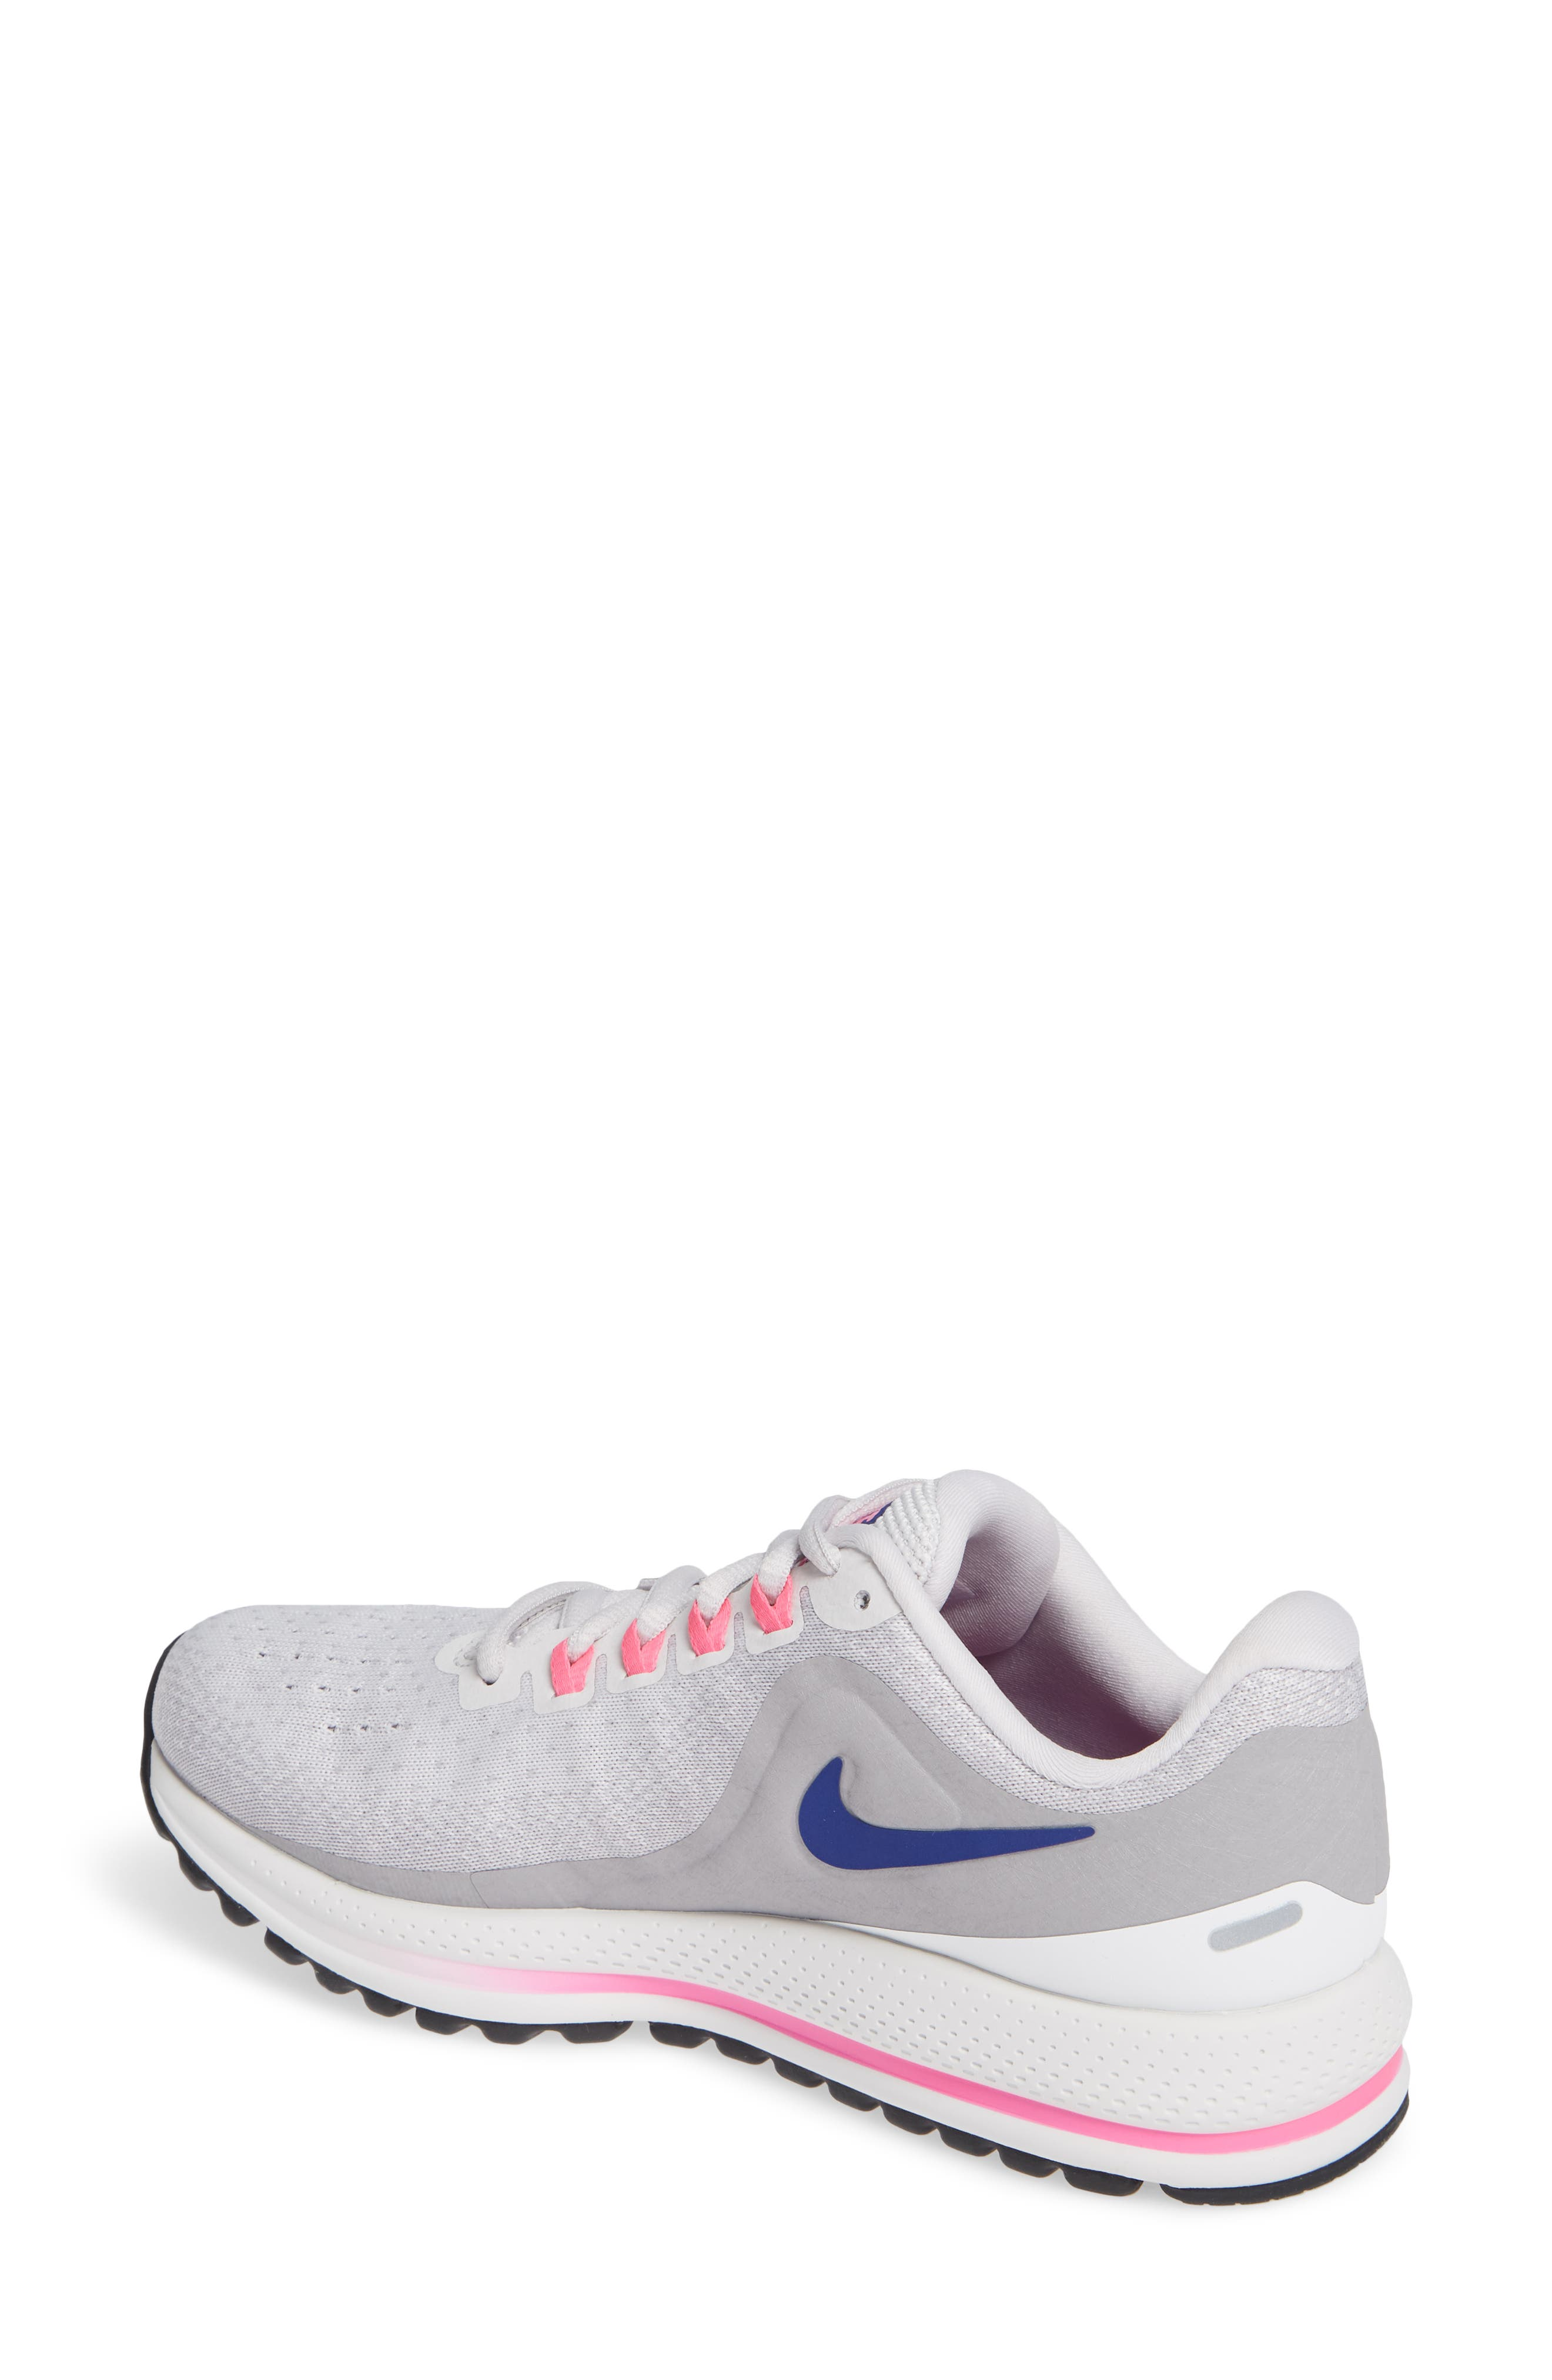 Air Zoom Vomero 13 Running Shoe,                             Alternate thumbnail 12, color,